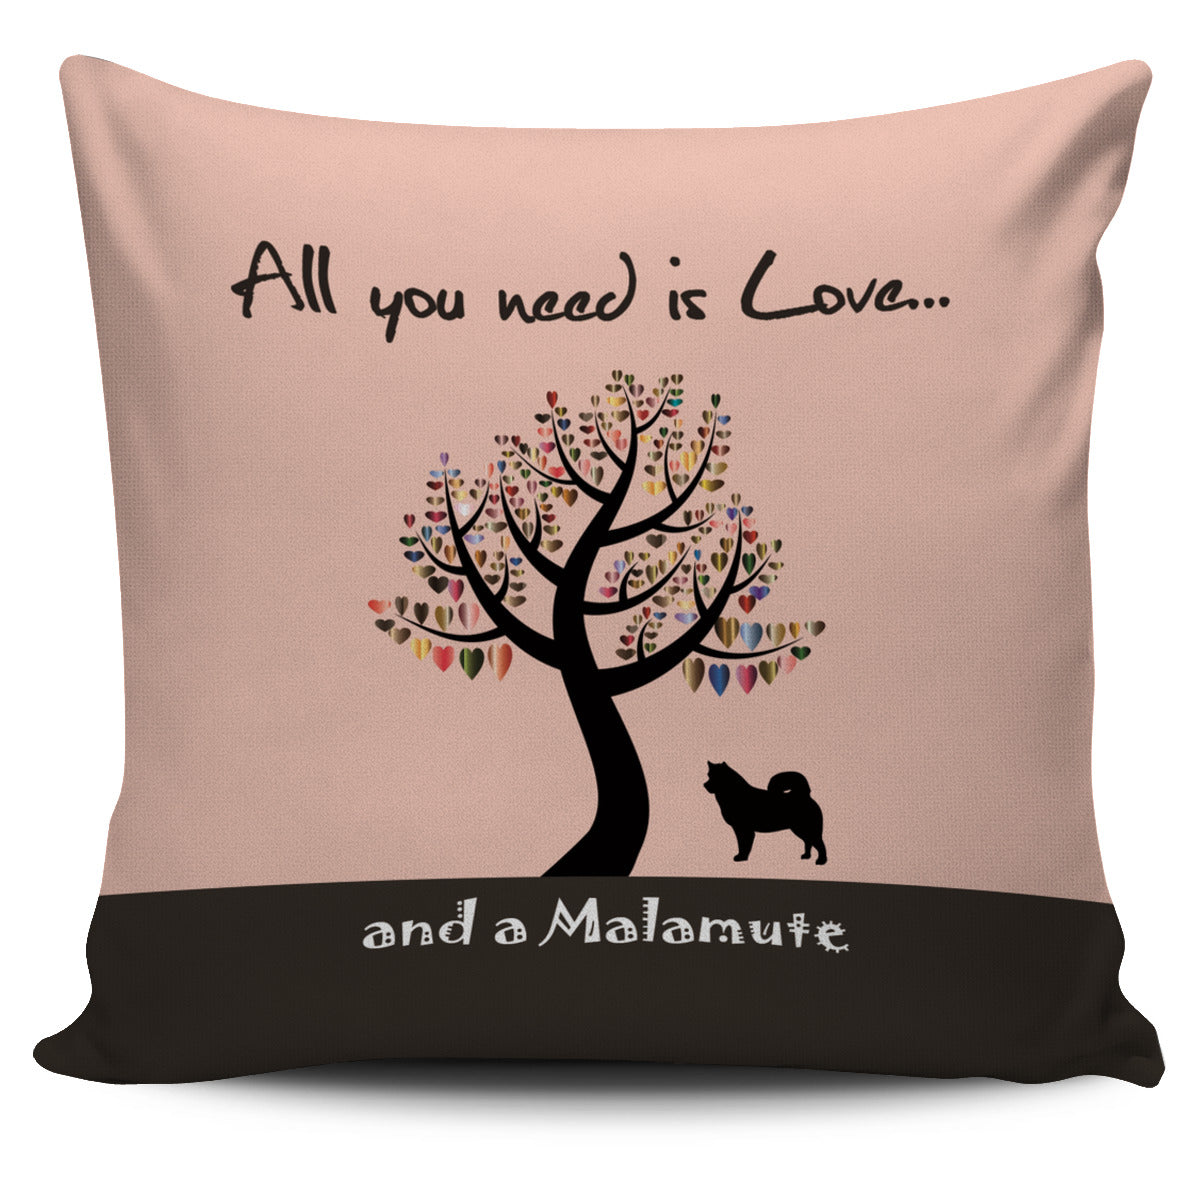 All You Need Is Love And A Malamute pink pillow